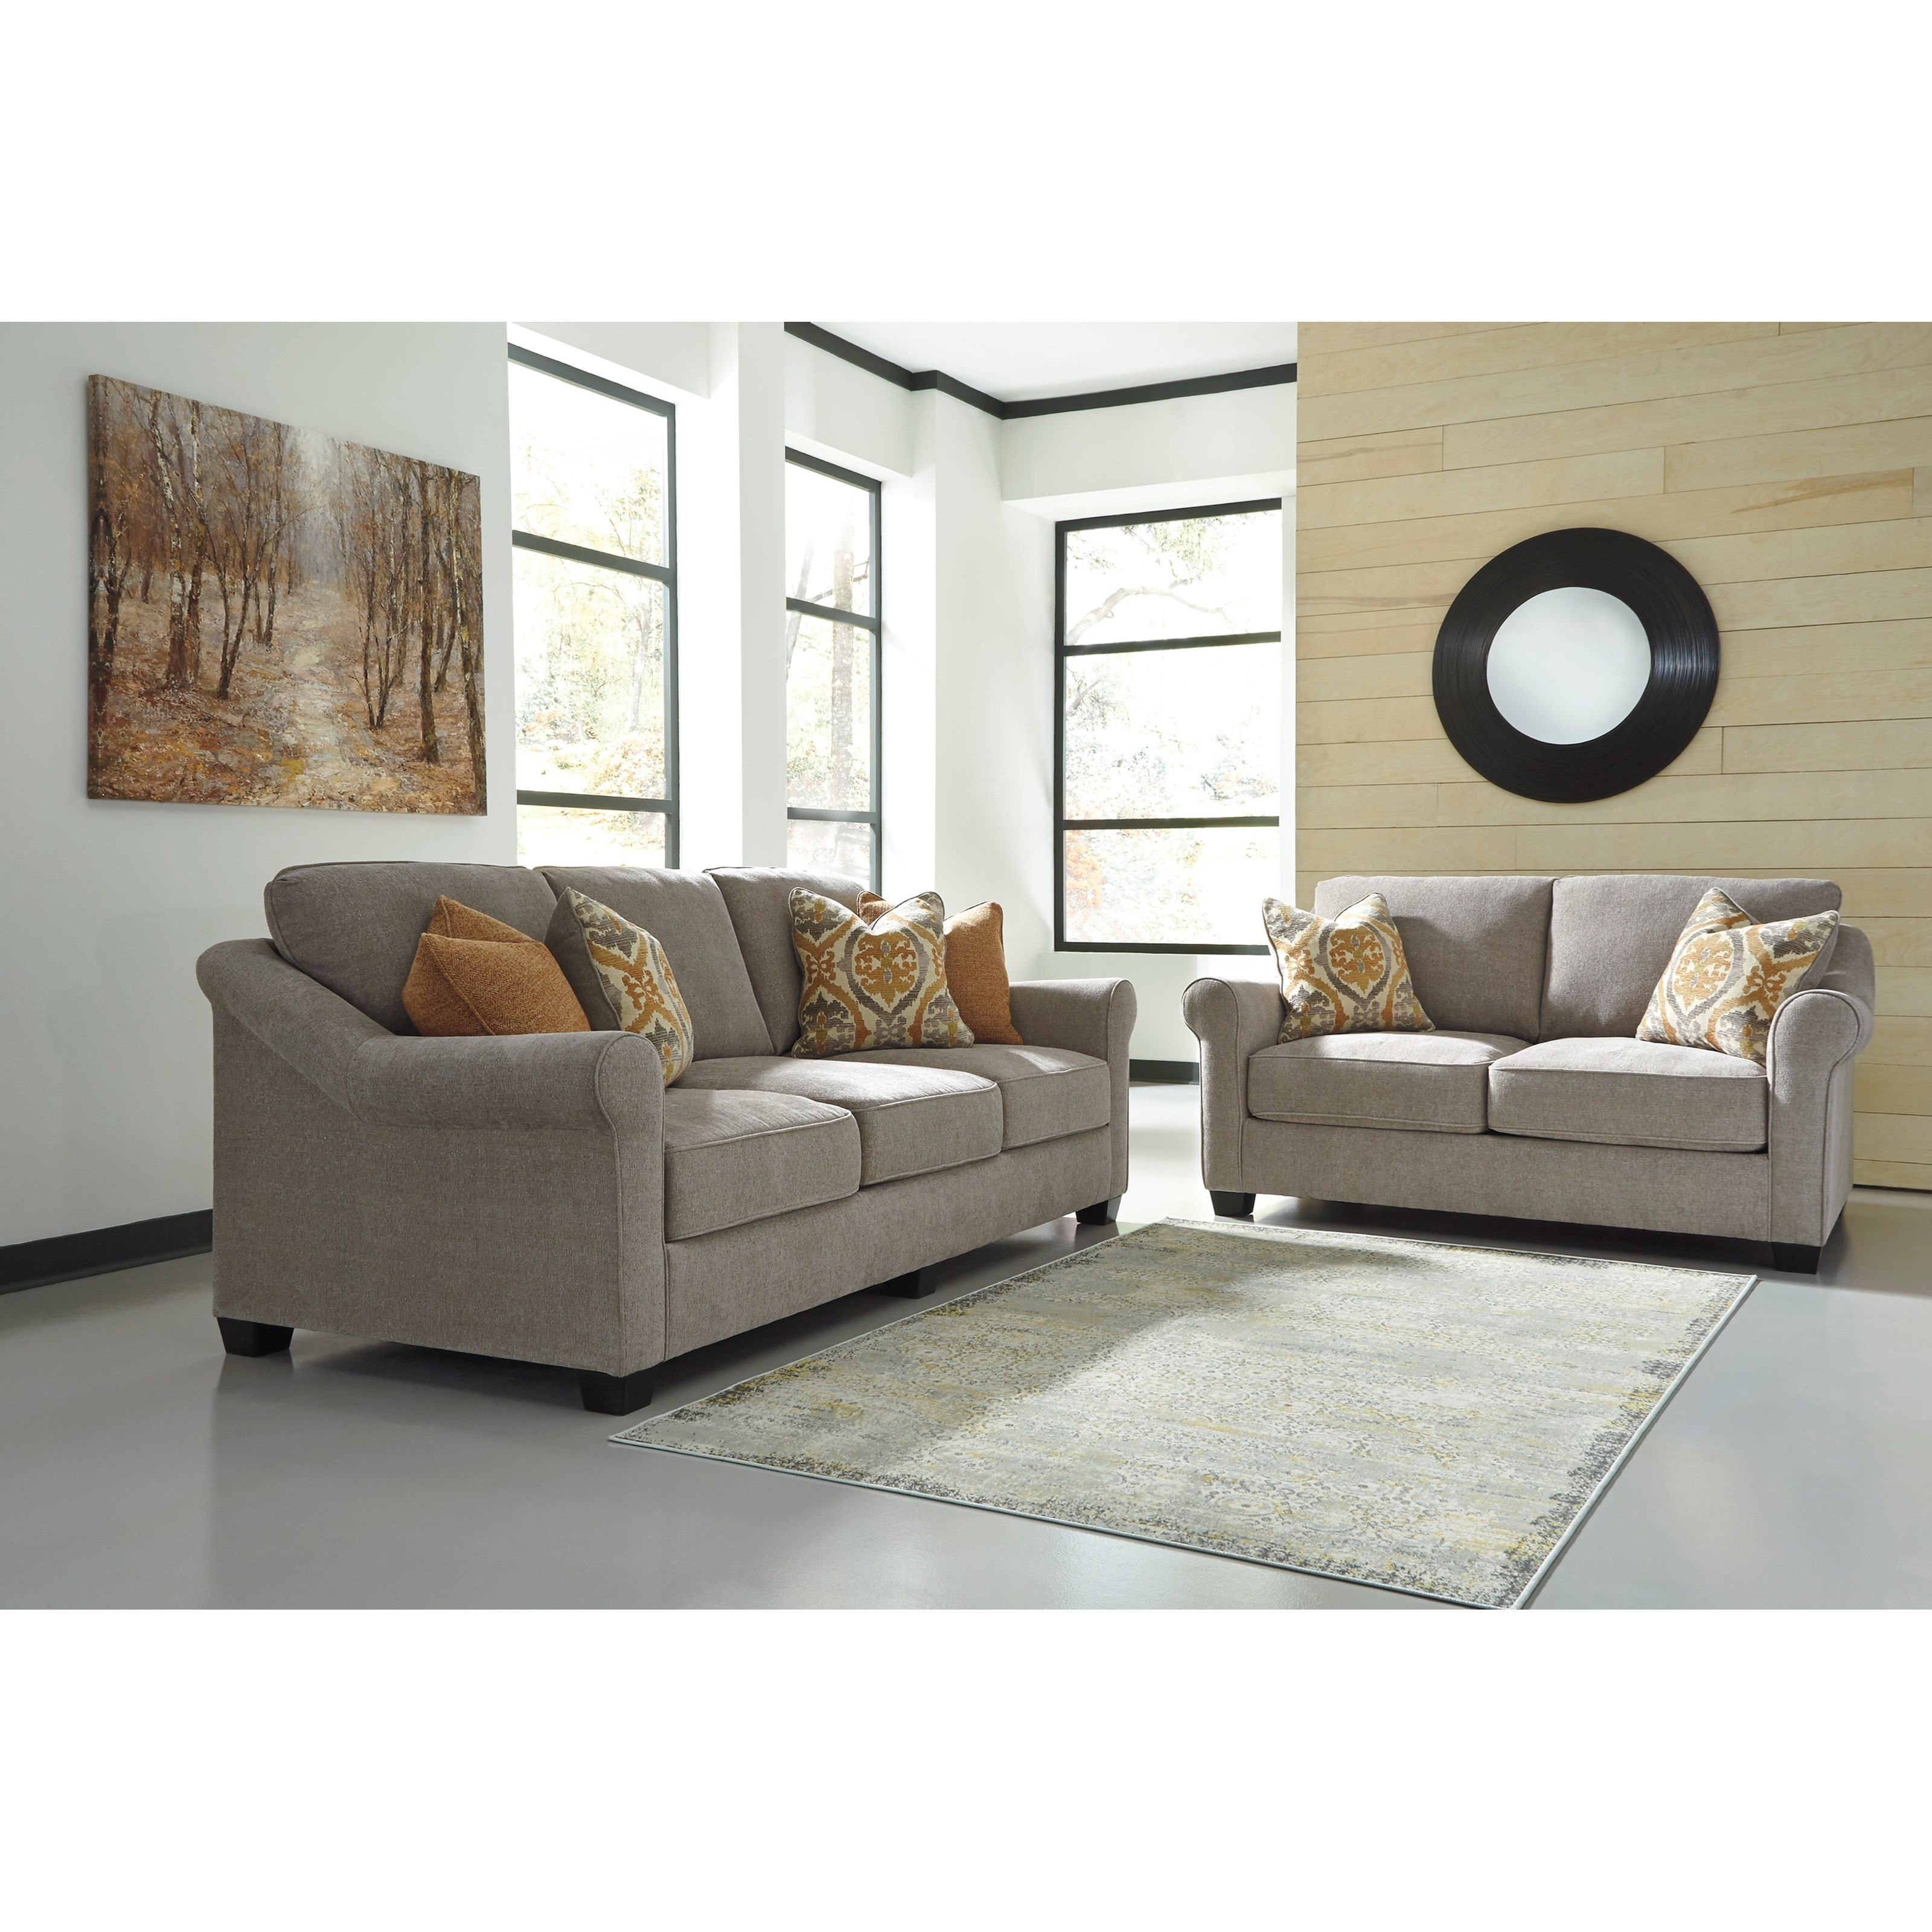 Benchcraft leola stationary living room group zak 39 s fine for Living room furniture groups